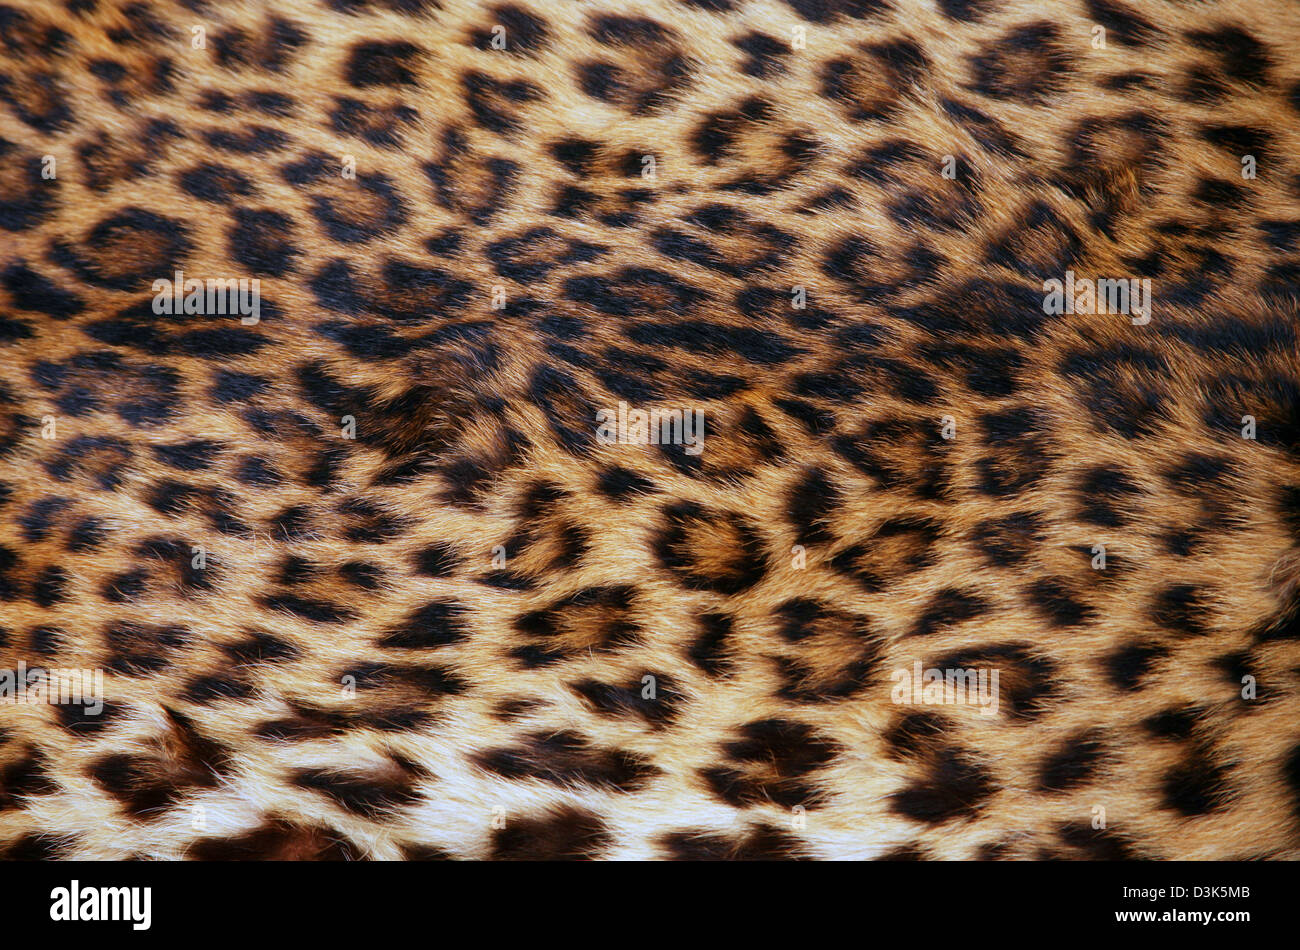 af37fbc4c8 Full screen high resolution shot of a skin of the leopard. Good for a  texture